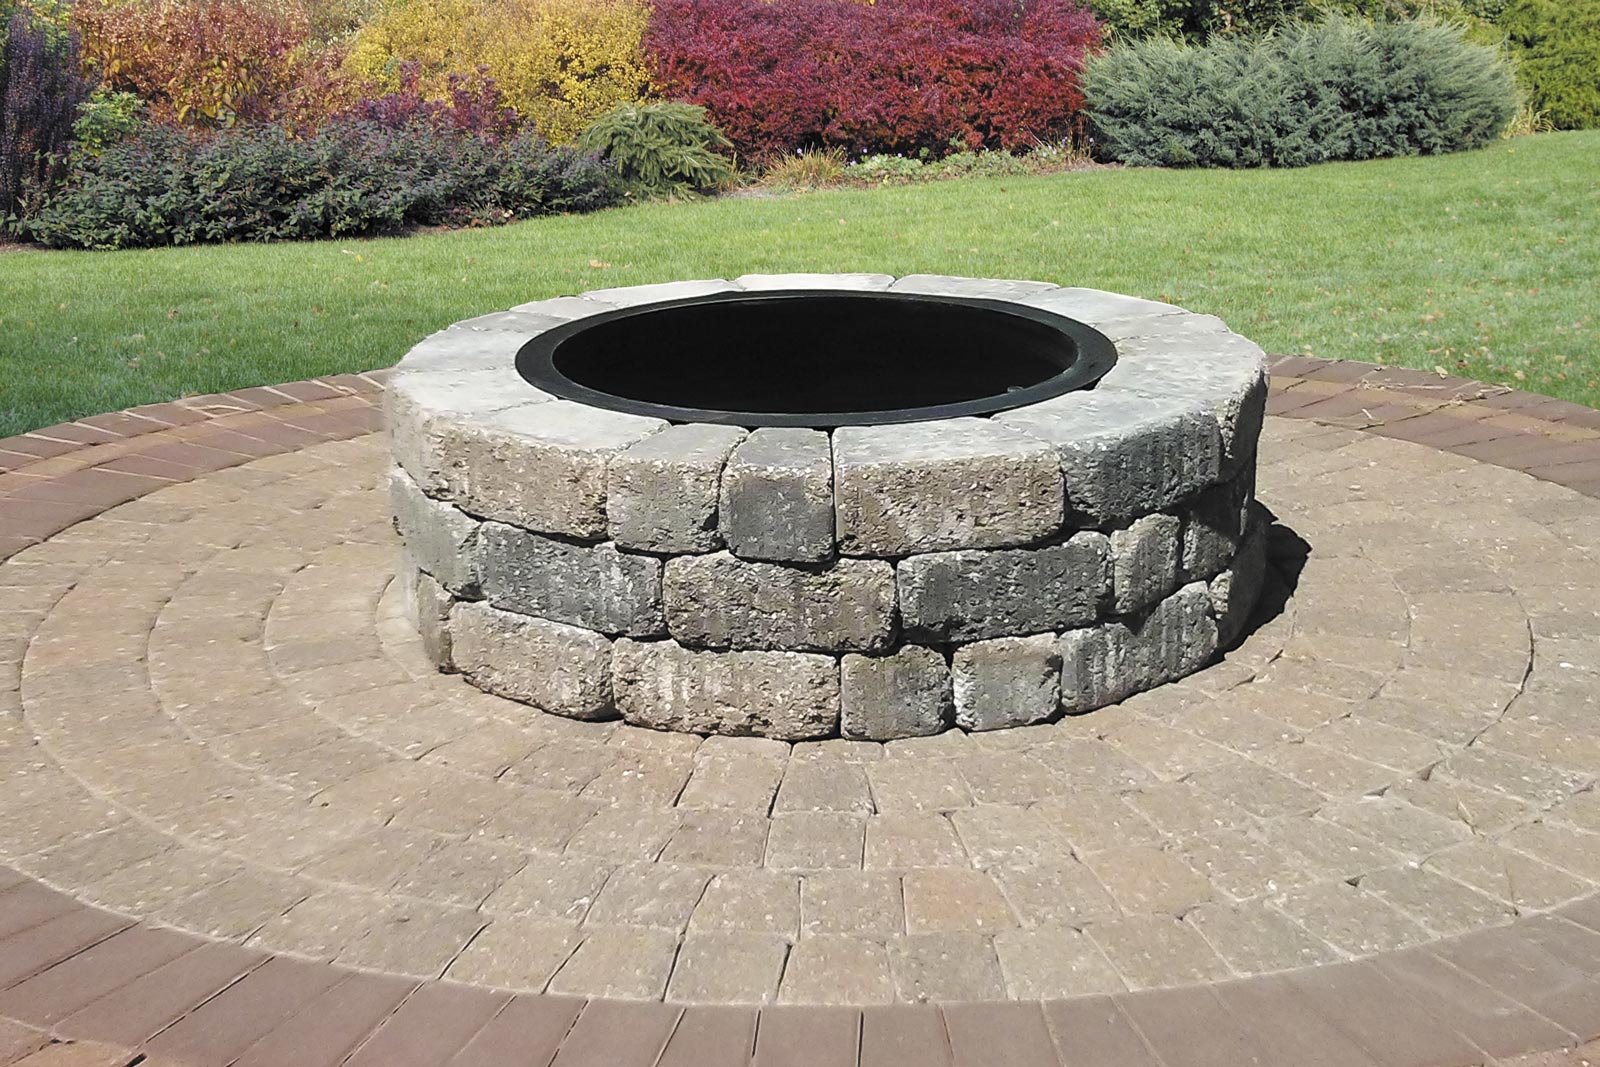 Weathered Century Series Circle Paver Kits Add A Clasiic Look That Is Hard To Find